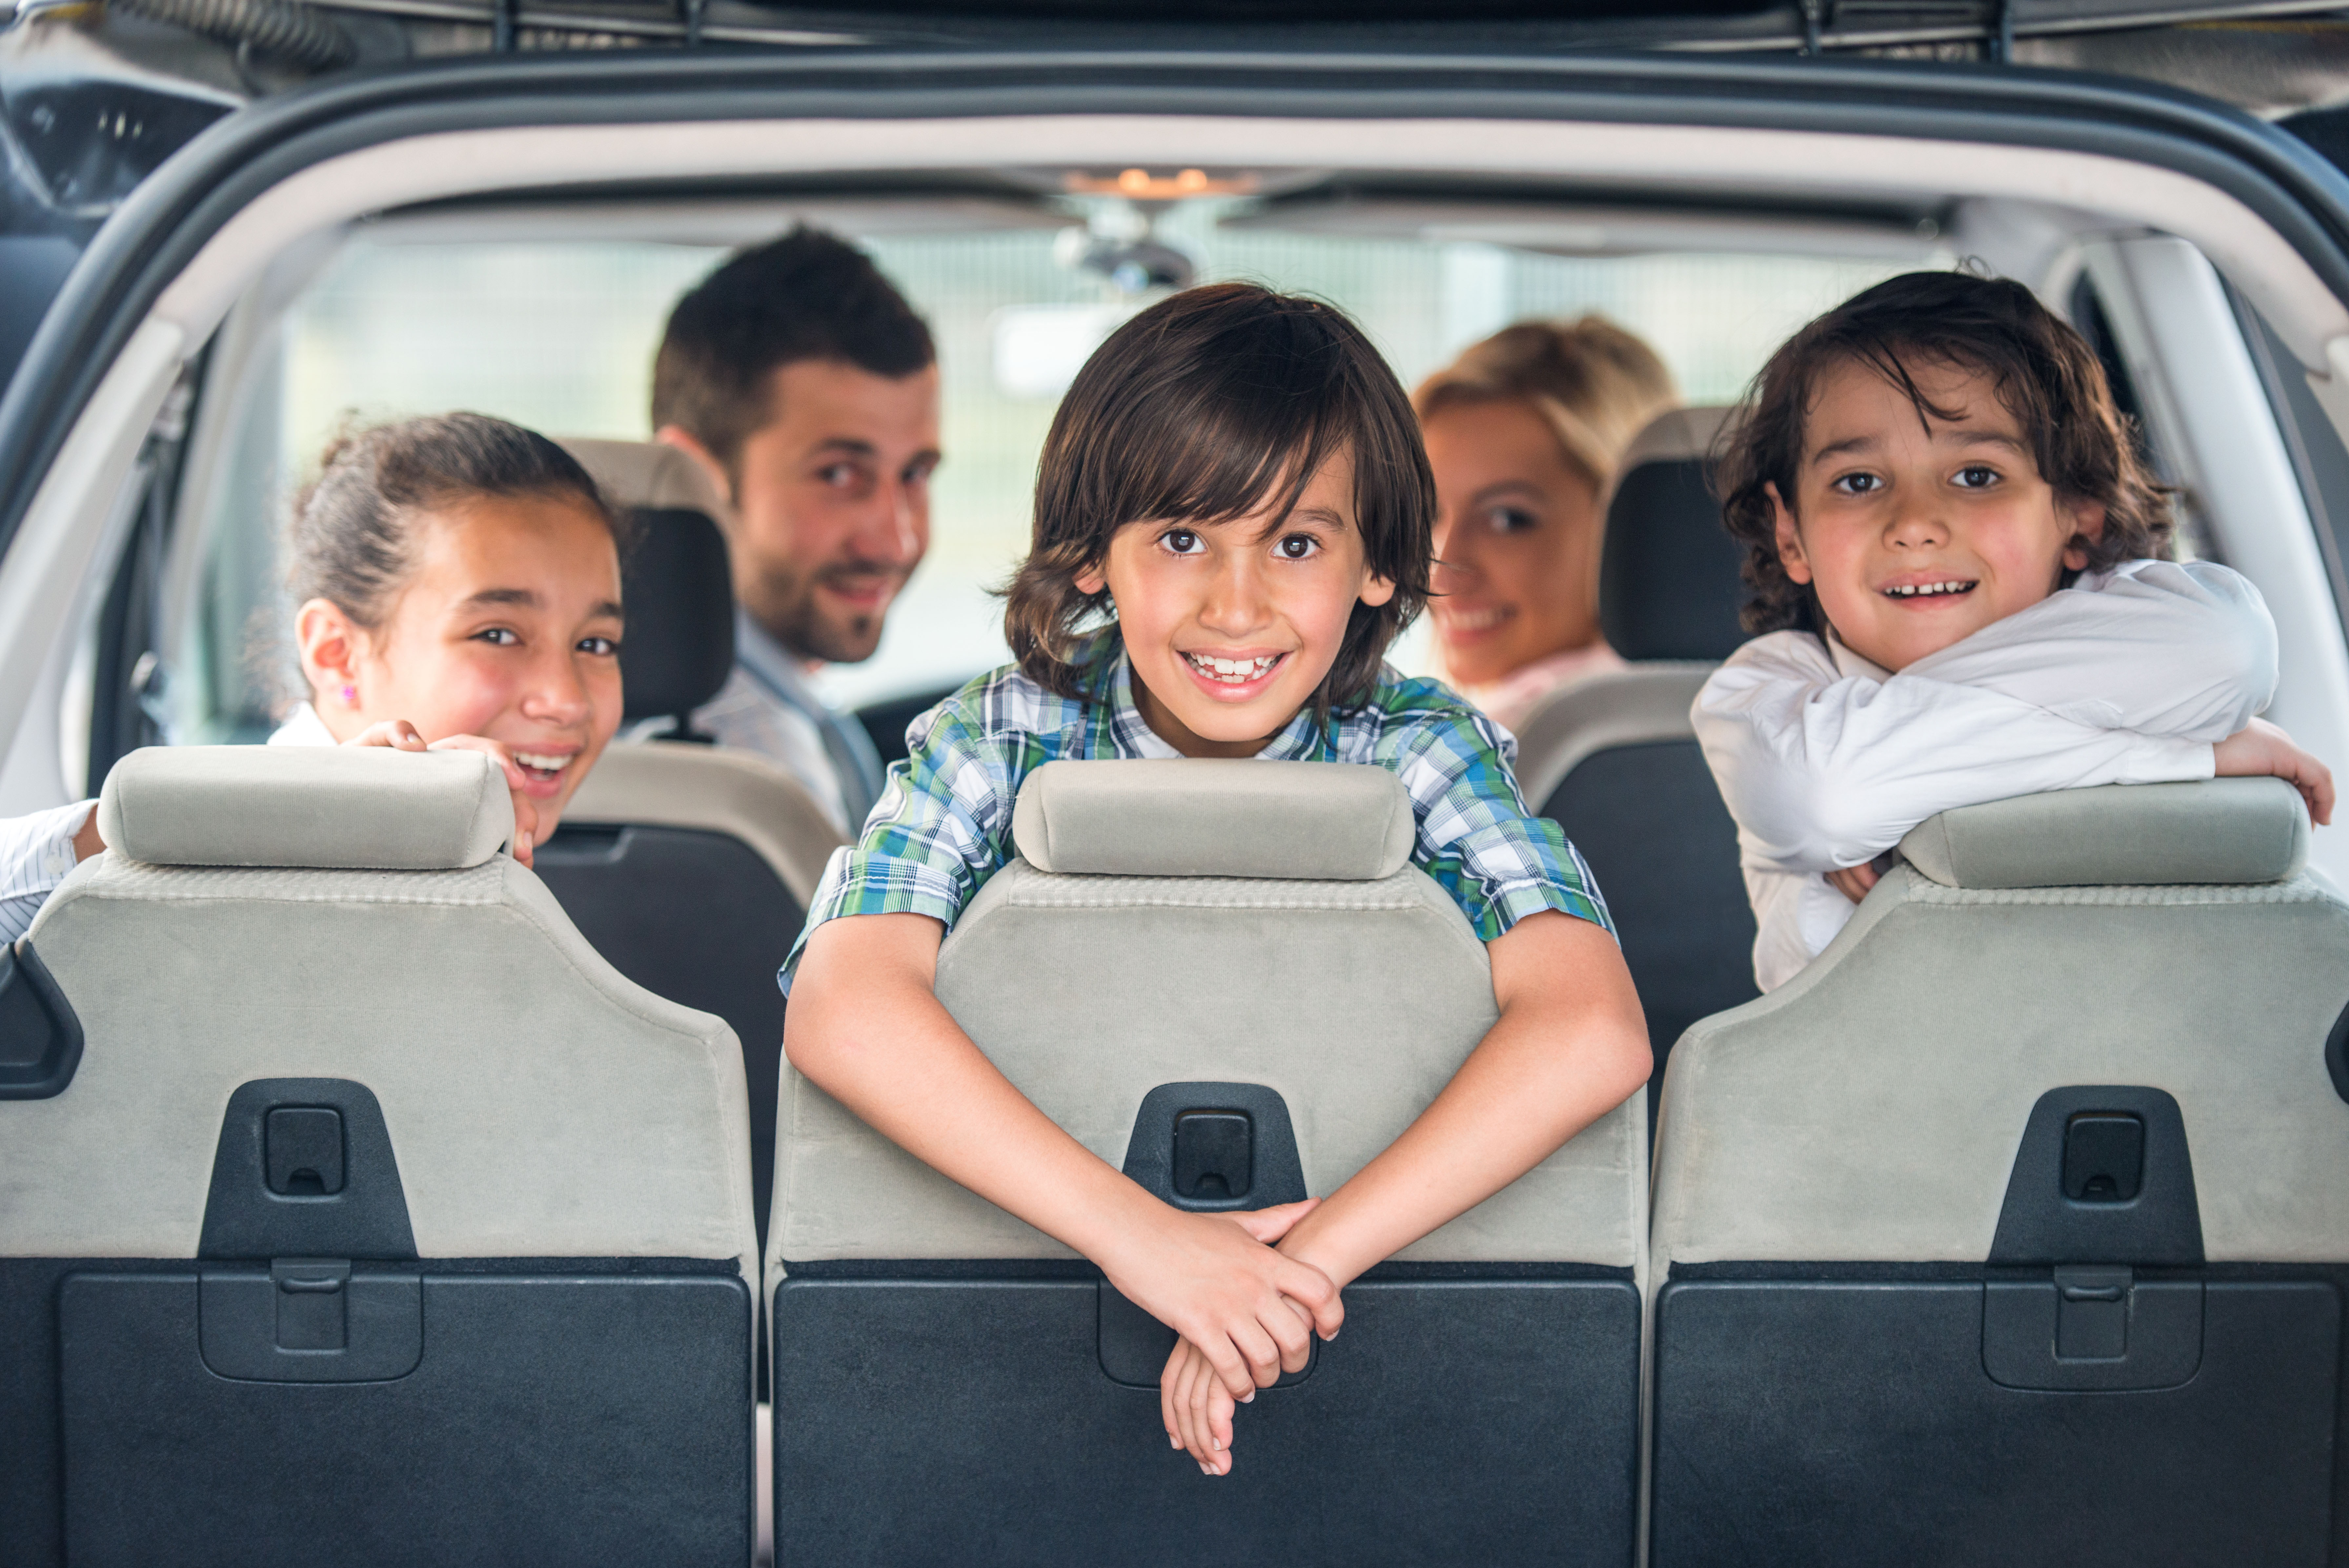 Playful kids posing in the back of a car